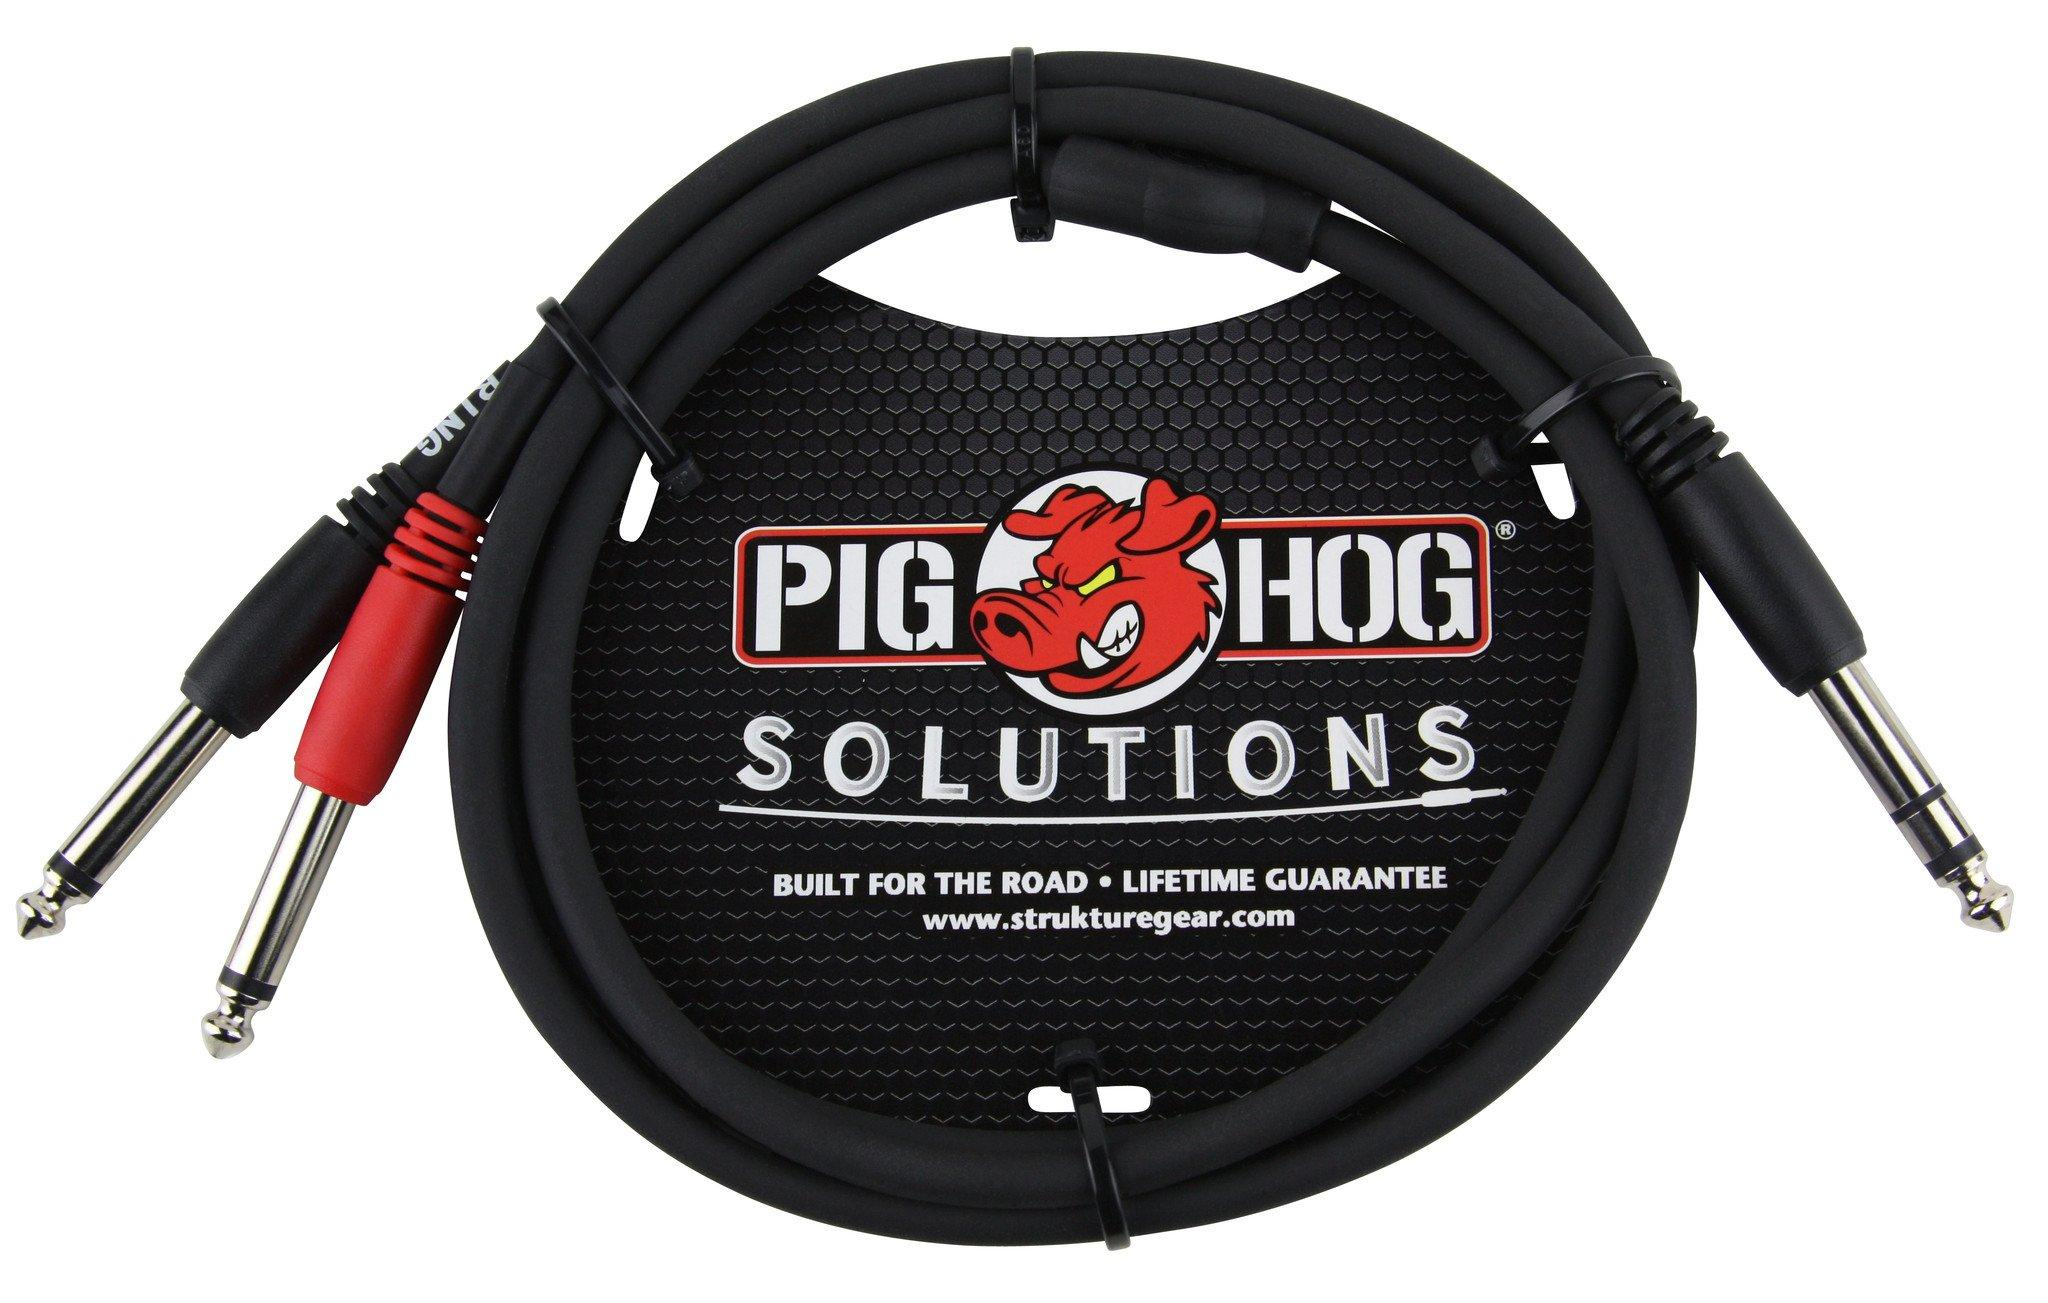 """Pig Hog Solutions - 3ft TRS(M)-Dual 1/4"""" Insert Cable"""